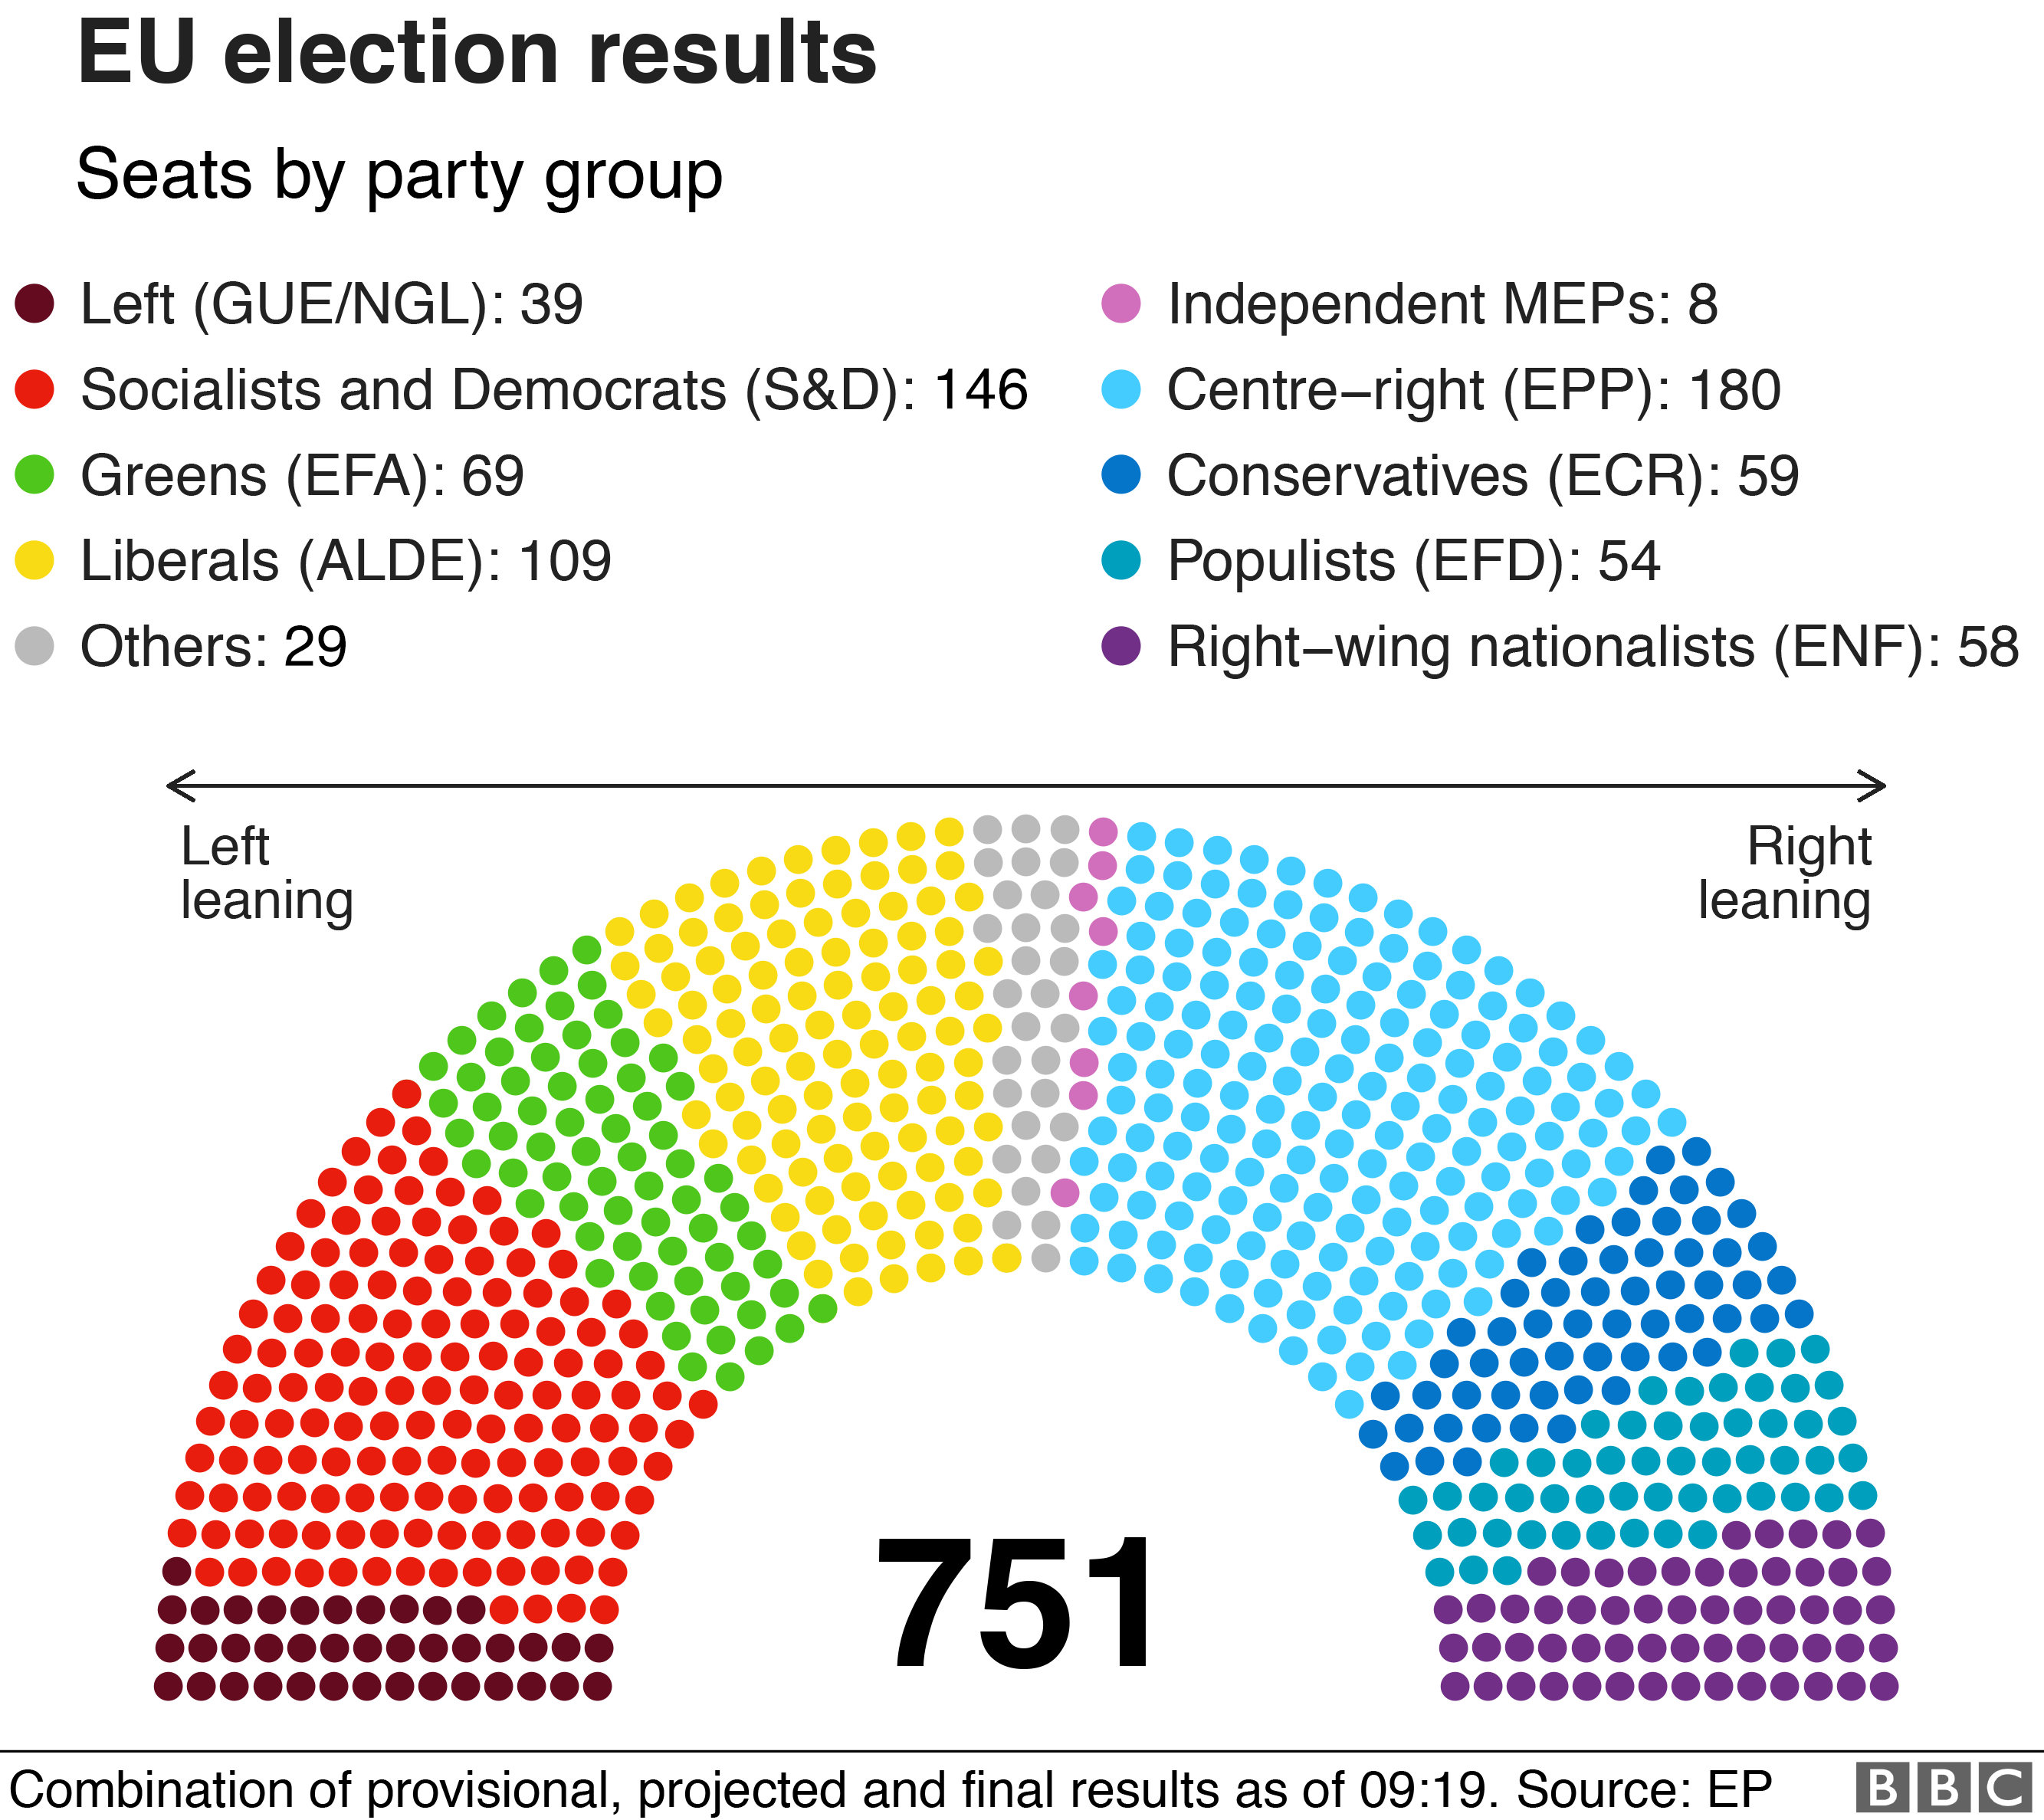 Results by party group. EPP largest with 180 out of 751